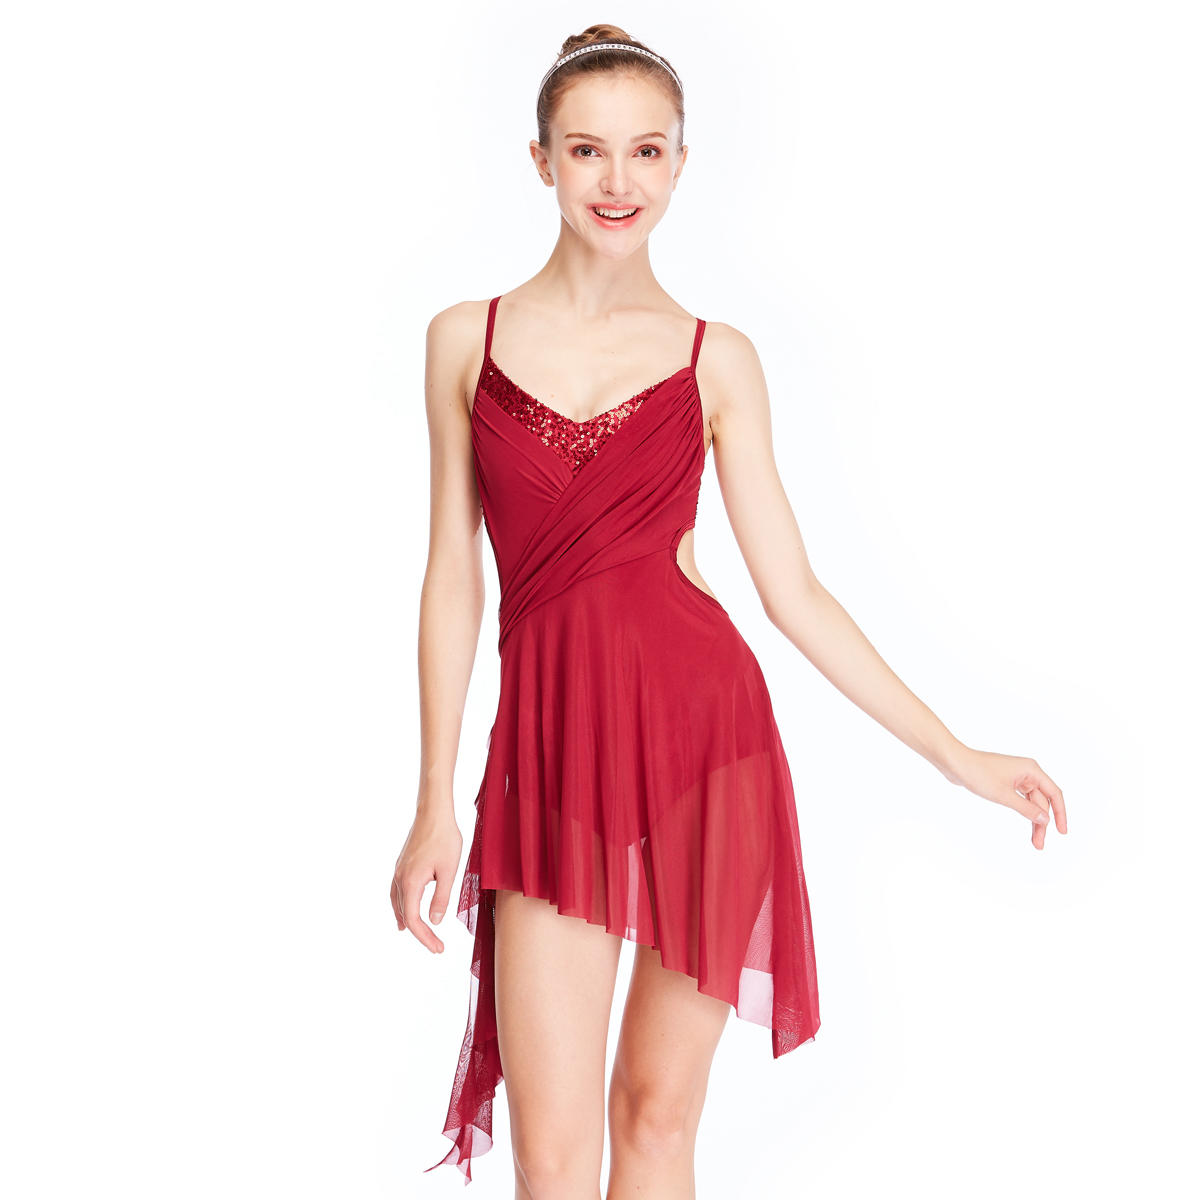 MiDee Modern Stage Performance Costumes Lyrical Ballet Dance Dresses For Girl